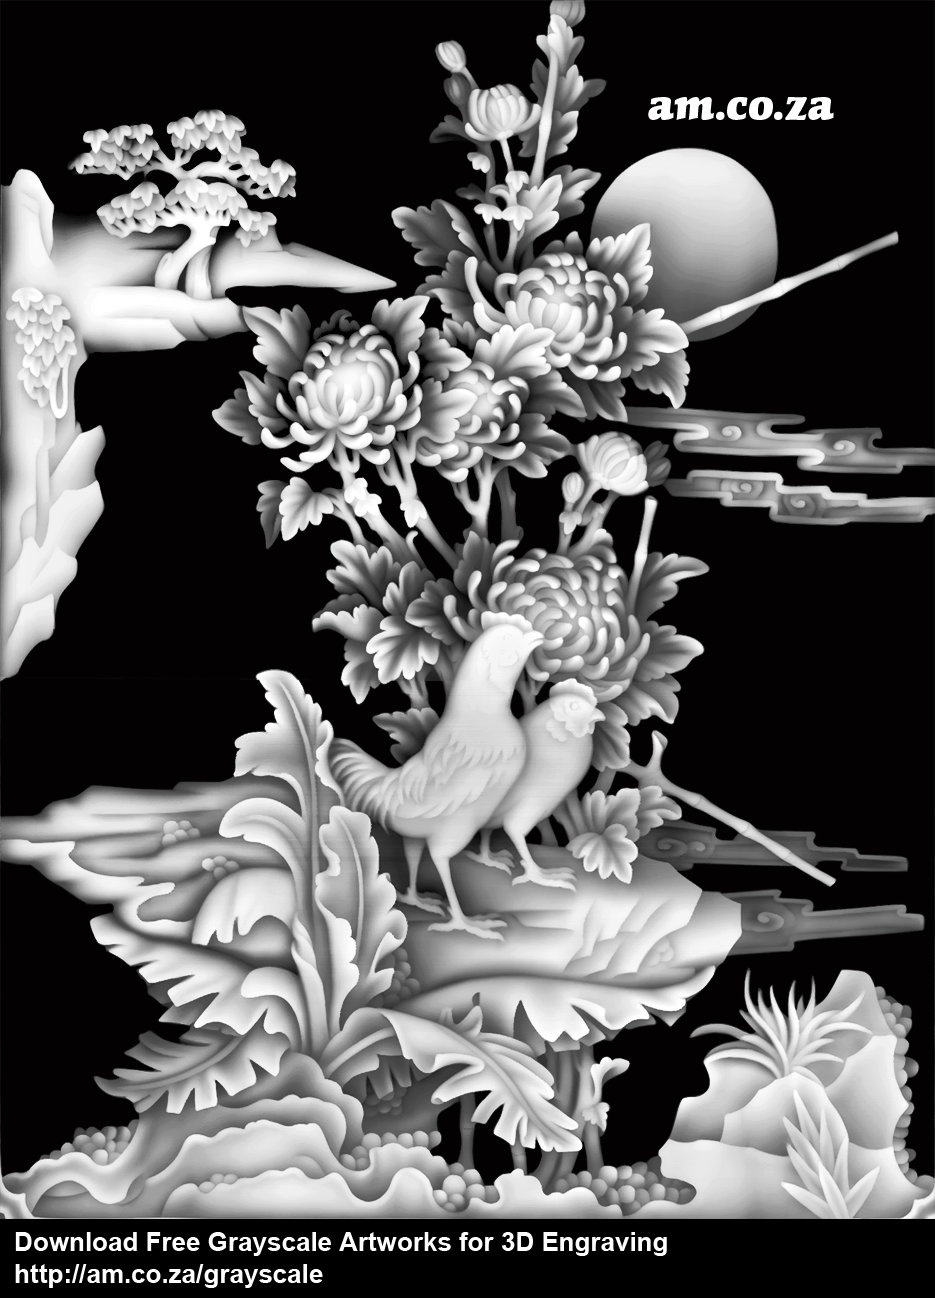 Grayscale 3d relief picture and images - Chrysanthemum With Birdssize 935 1219